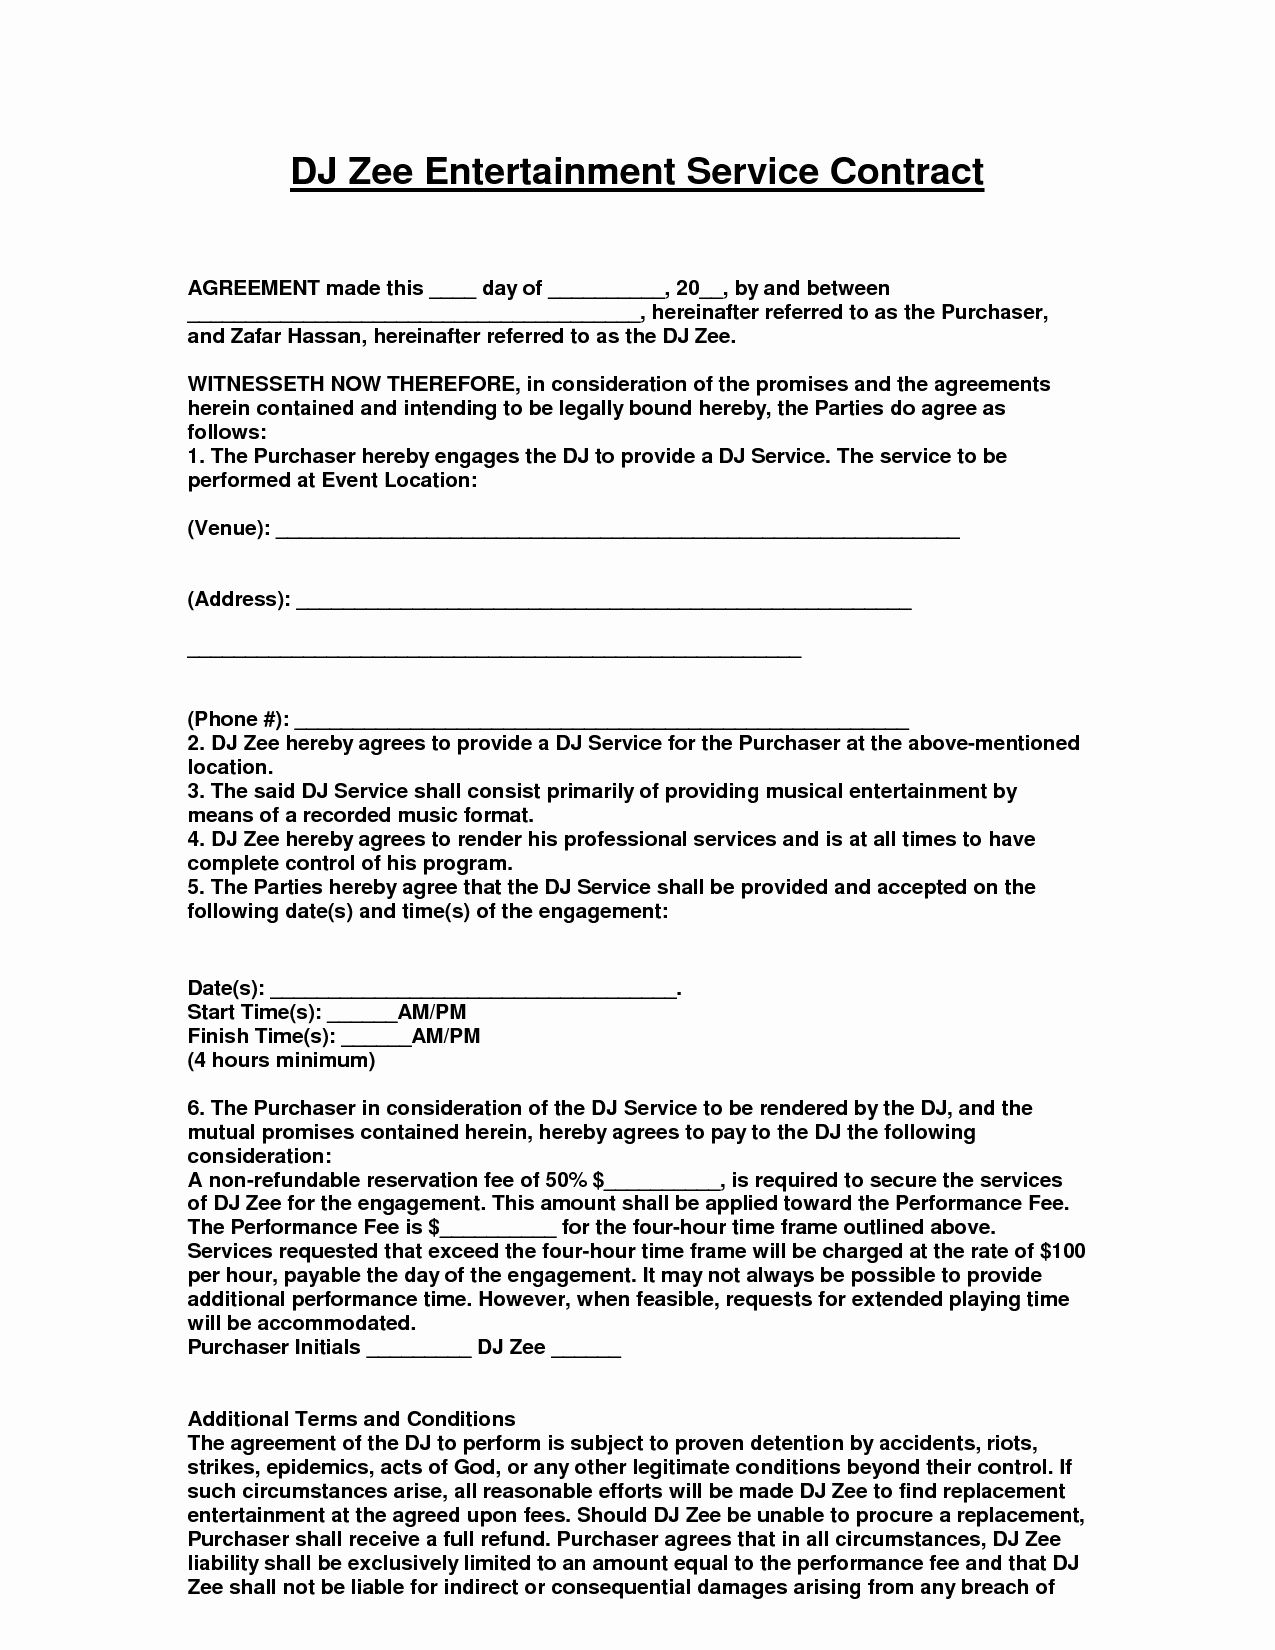 Free Dj Contract Template Lovely Entertainment Contract Agreement Images D J Contracts Contract Template Doctors Note Template Contract Agreement